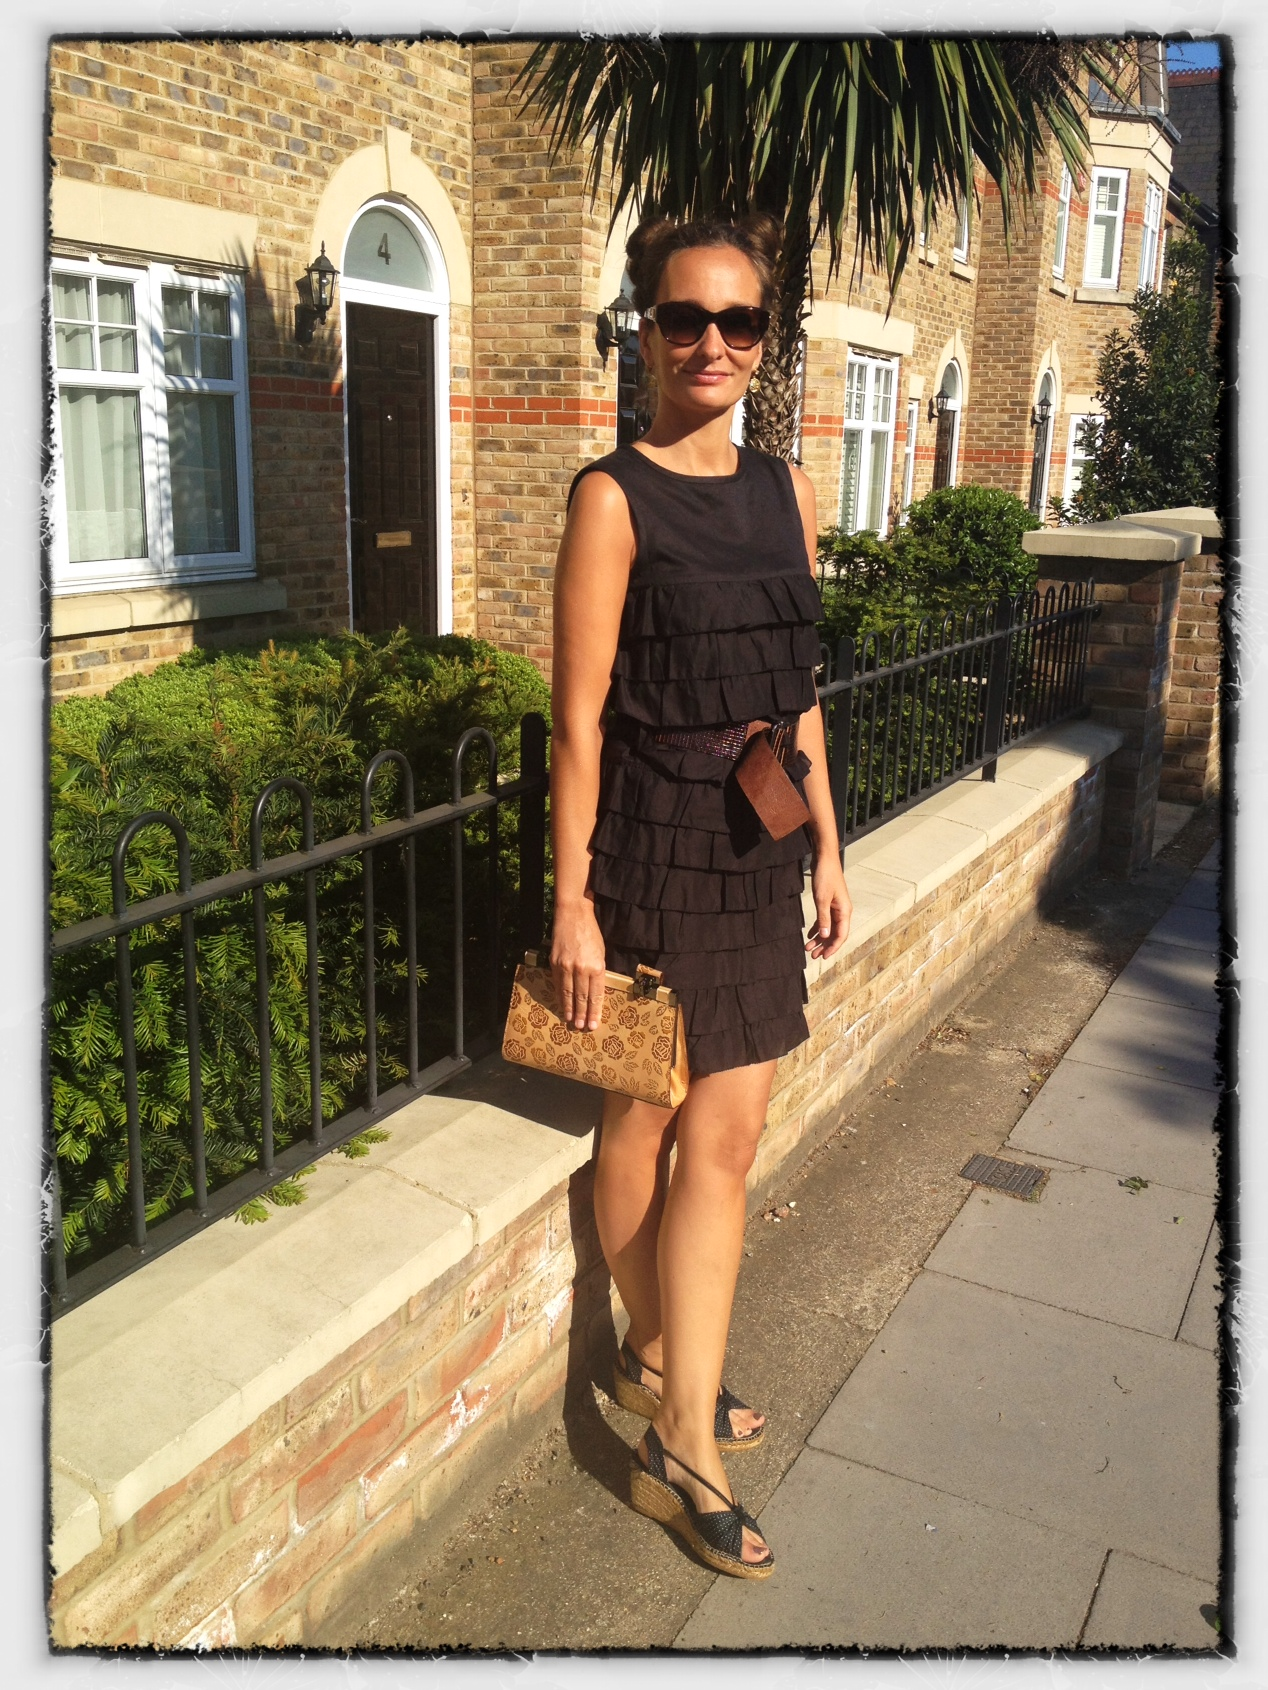 Black dress in summer - The Romantic Summer Lbd